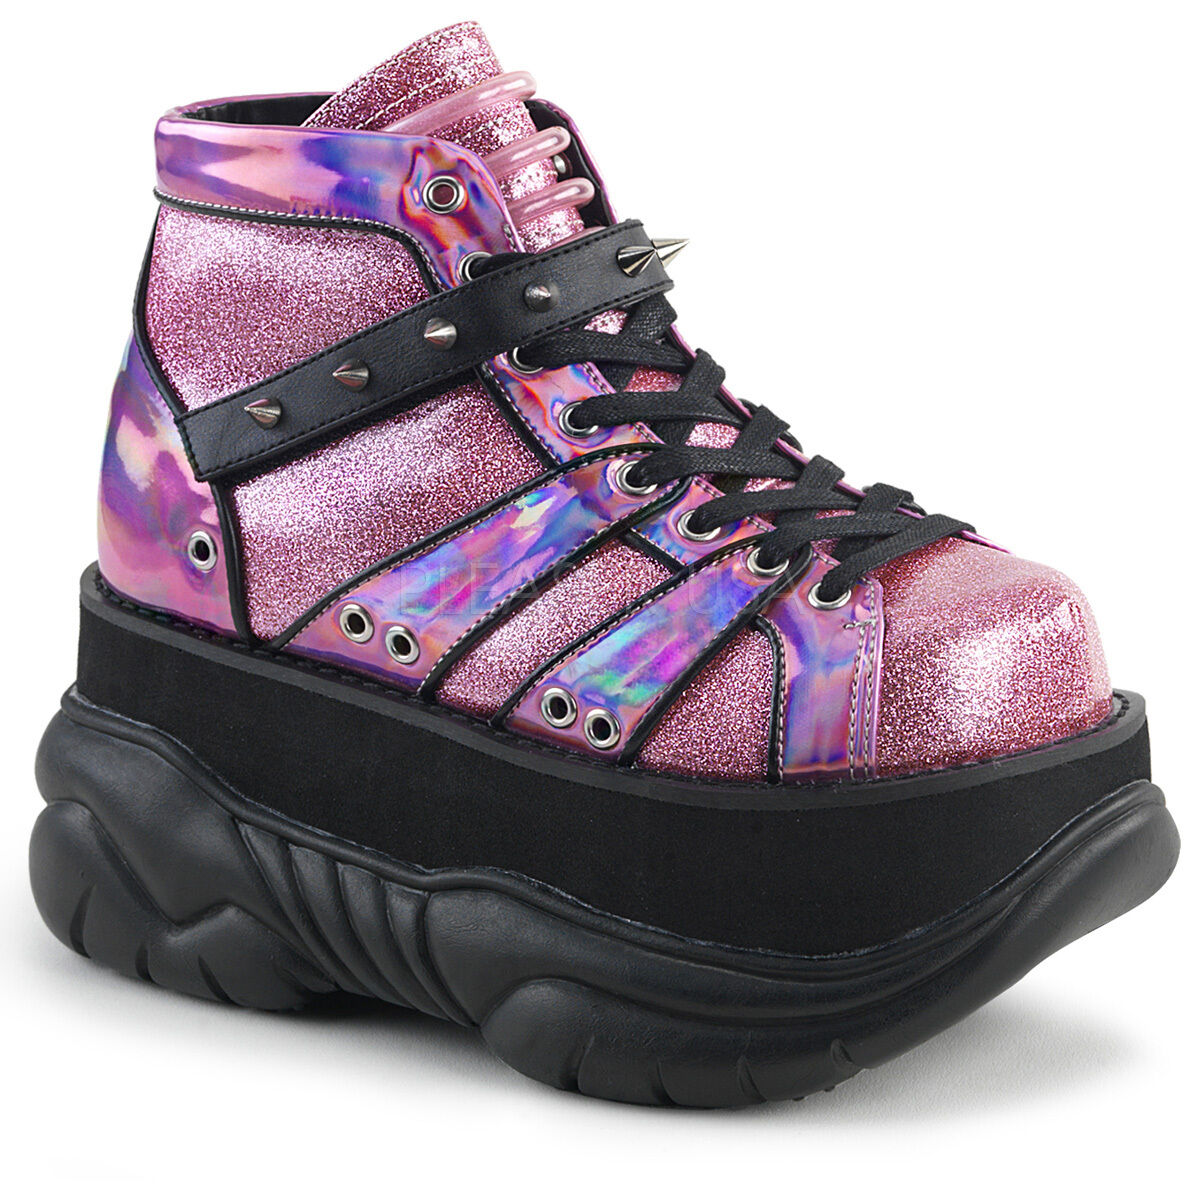 DEMONIA NEP100 PNHG Womens Goth Punk Cyber Cyber Cyber 3  Platform Pink Ankle Boots shoes f00c98